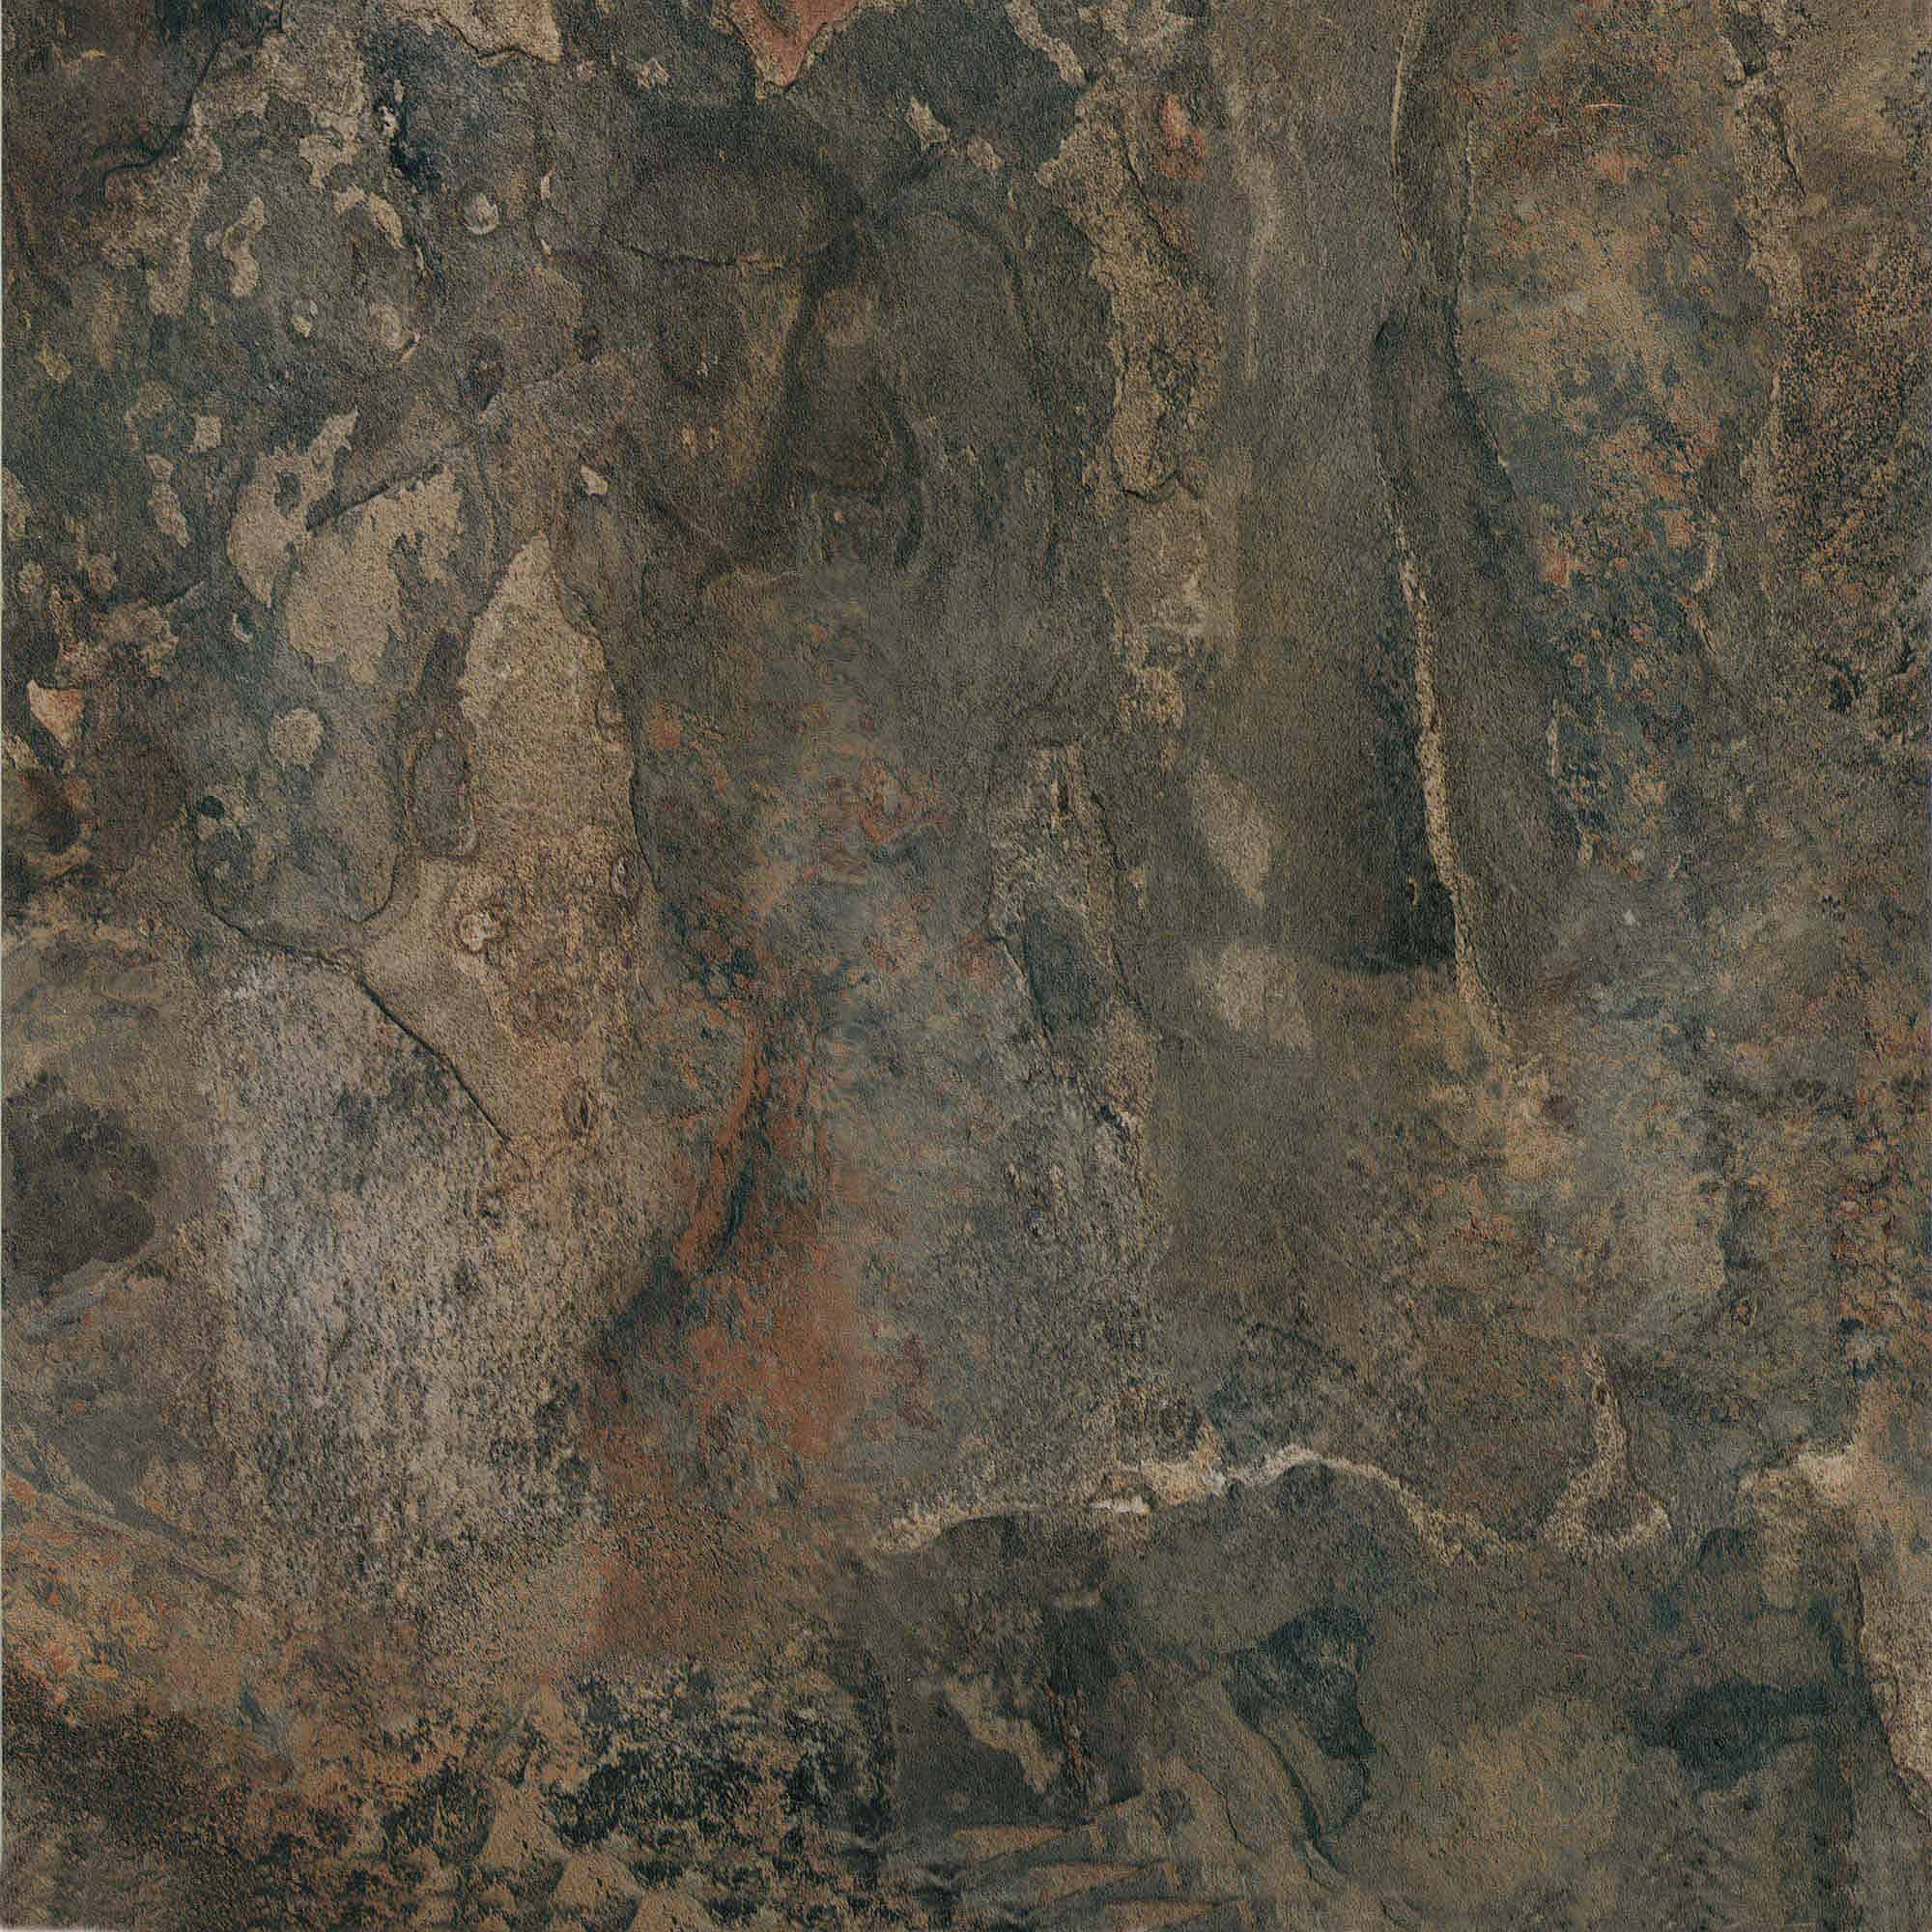 NEXUS Dark Slate Marble 12x12 Self Adhesive Vinyl Floor Tile - 20 Tiles/20 Sq.Ft.